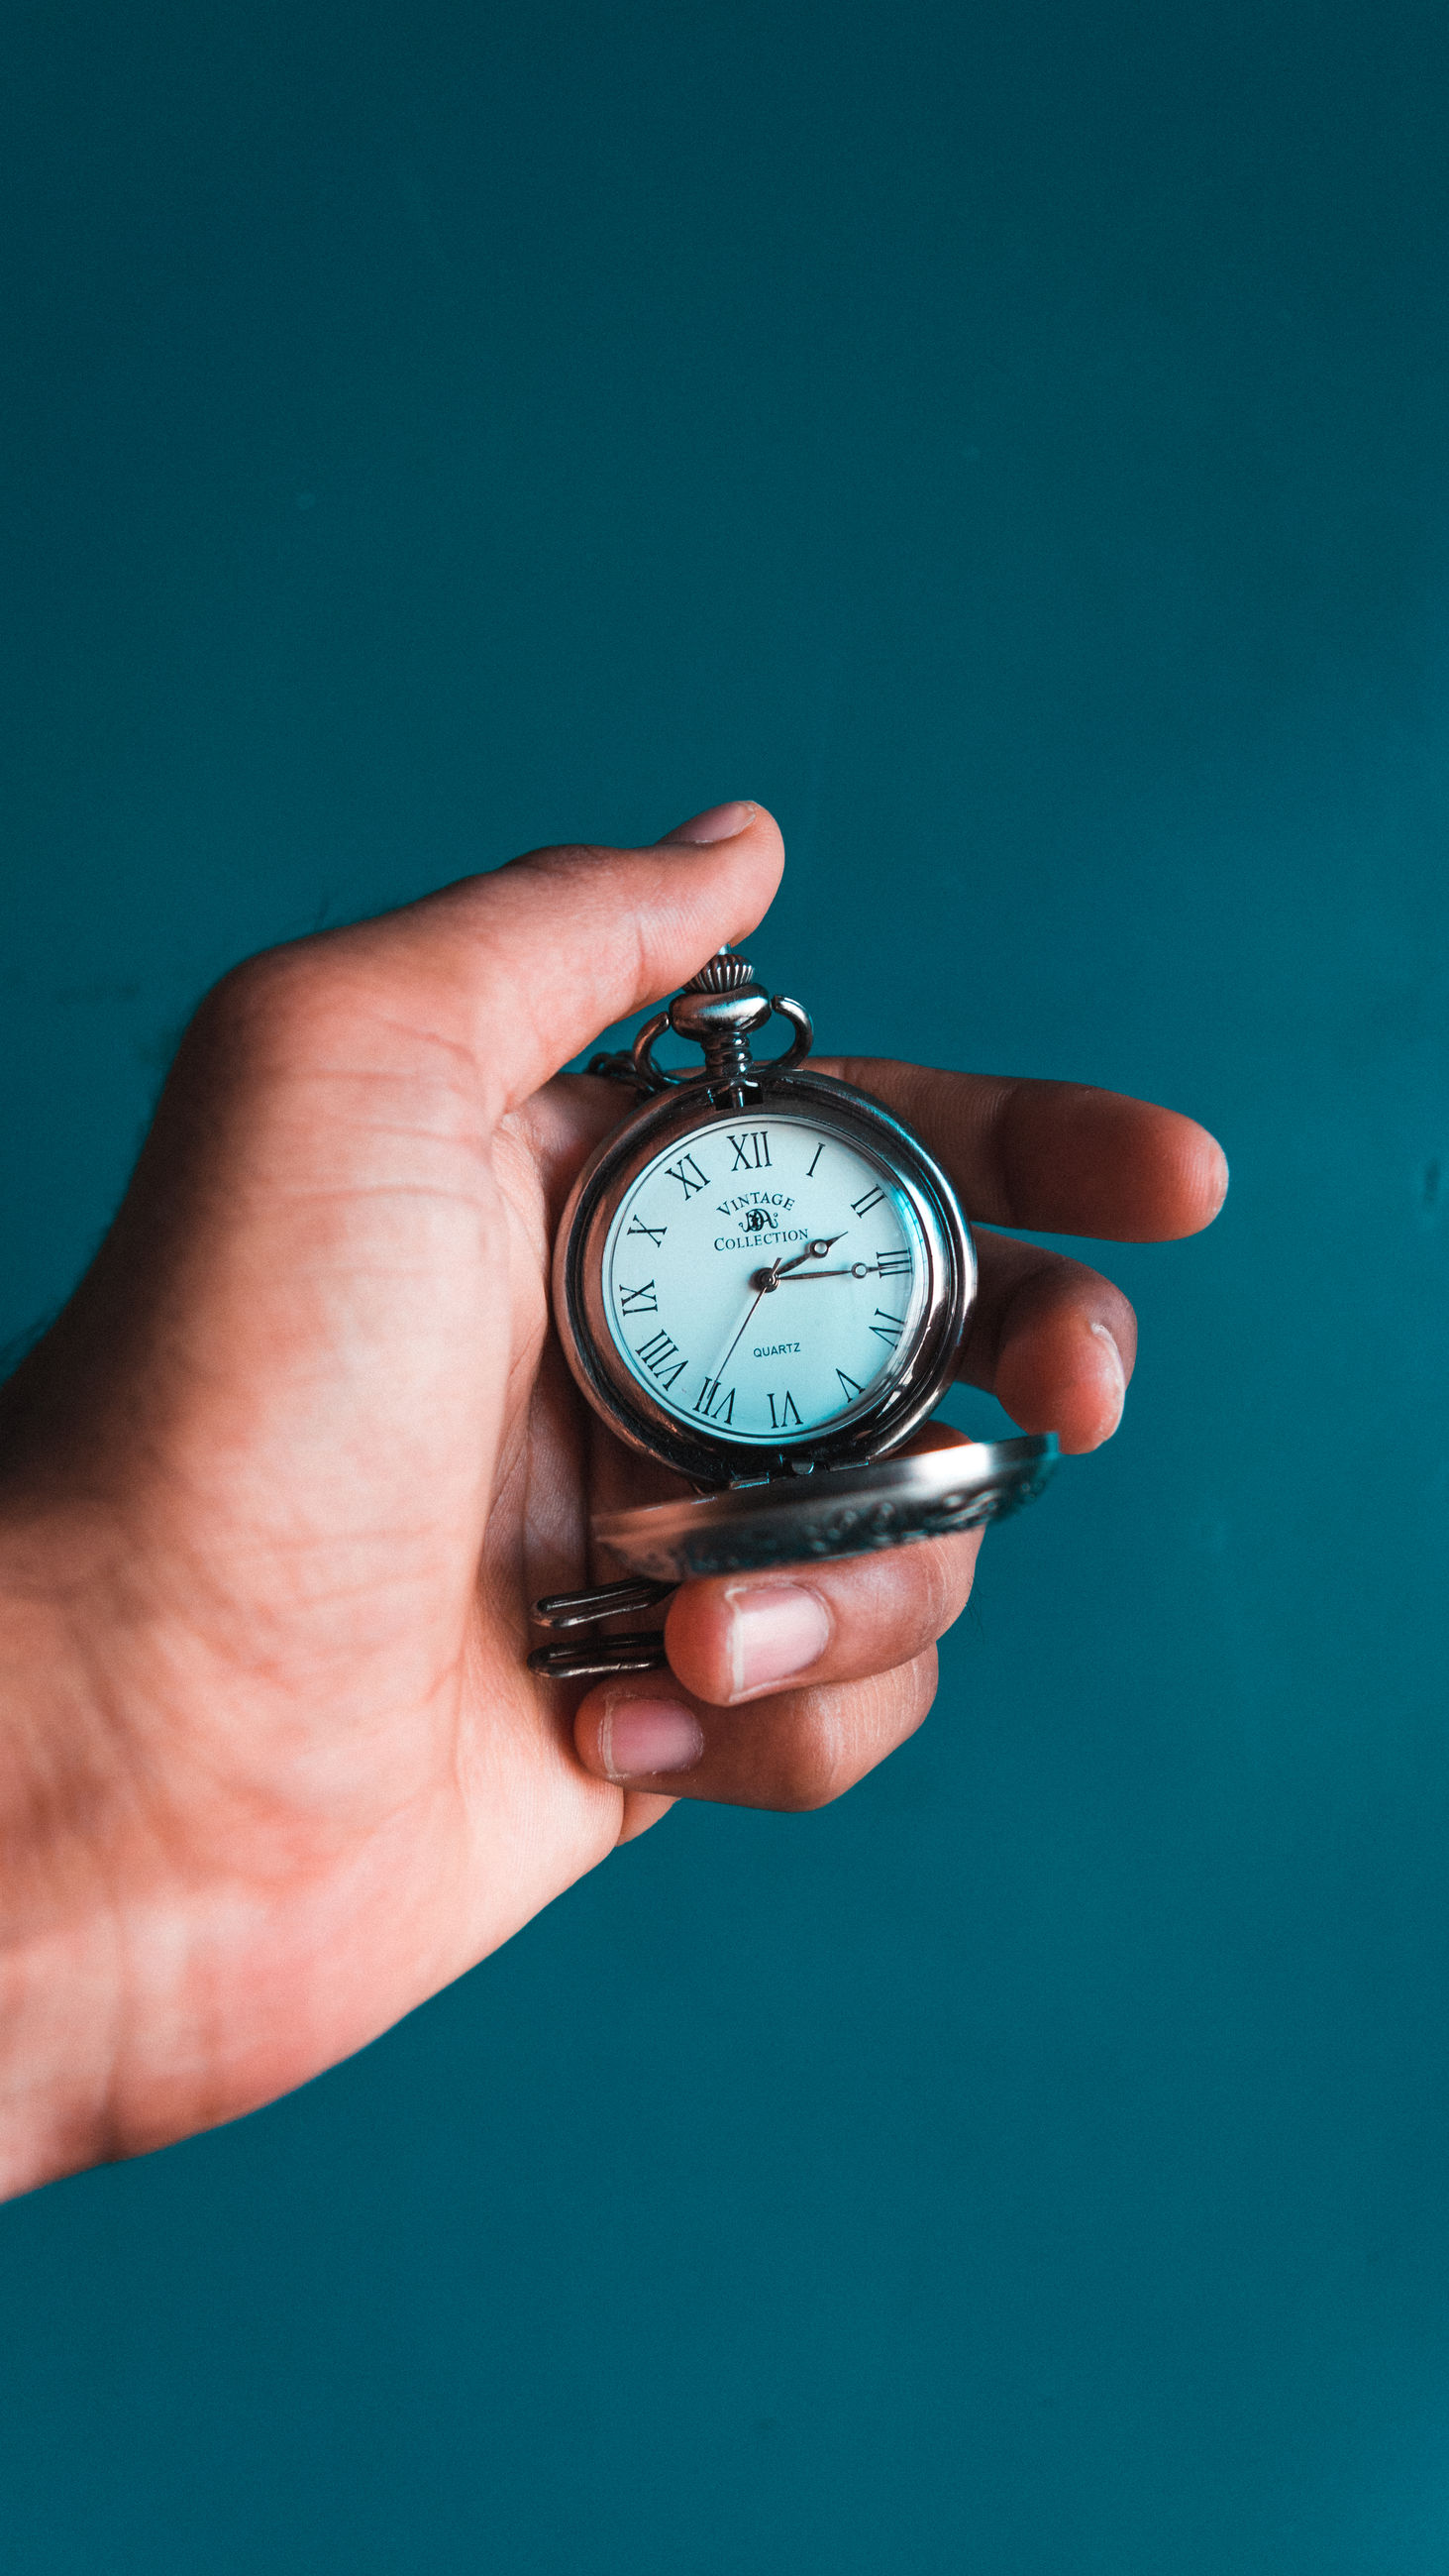 human hand, hand, human body part, time, holding, one person, clock, watch, real people, body part, indoors, colored background, studio shot, blue, lifestyles, instrument of time, blue background, close-up, unrecognizable person, finger, pocket watch, clock face, personal accessory, stopwatch